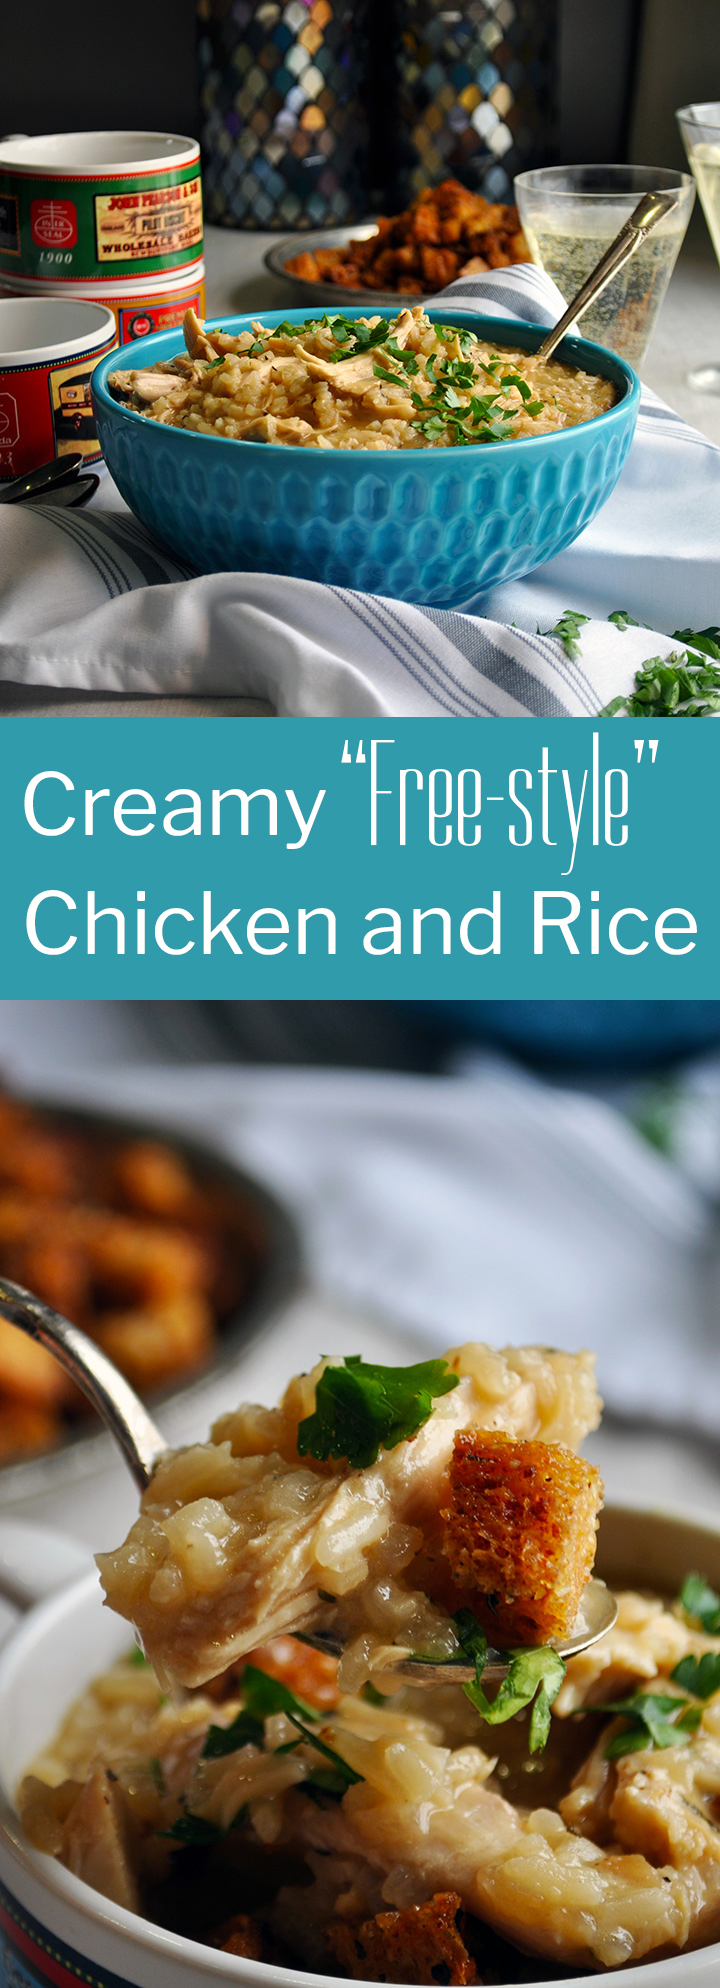 Creamy Chicken and Rice recipe